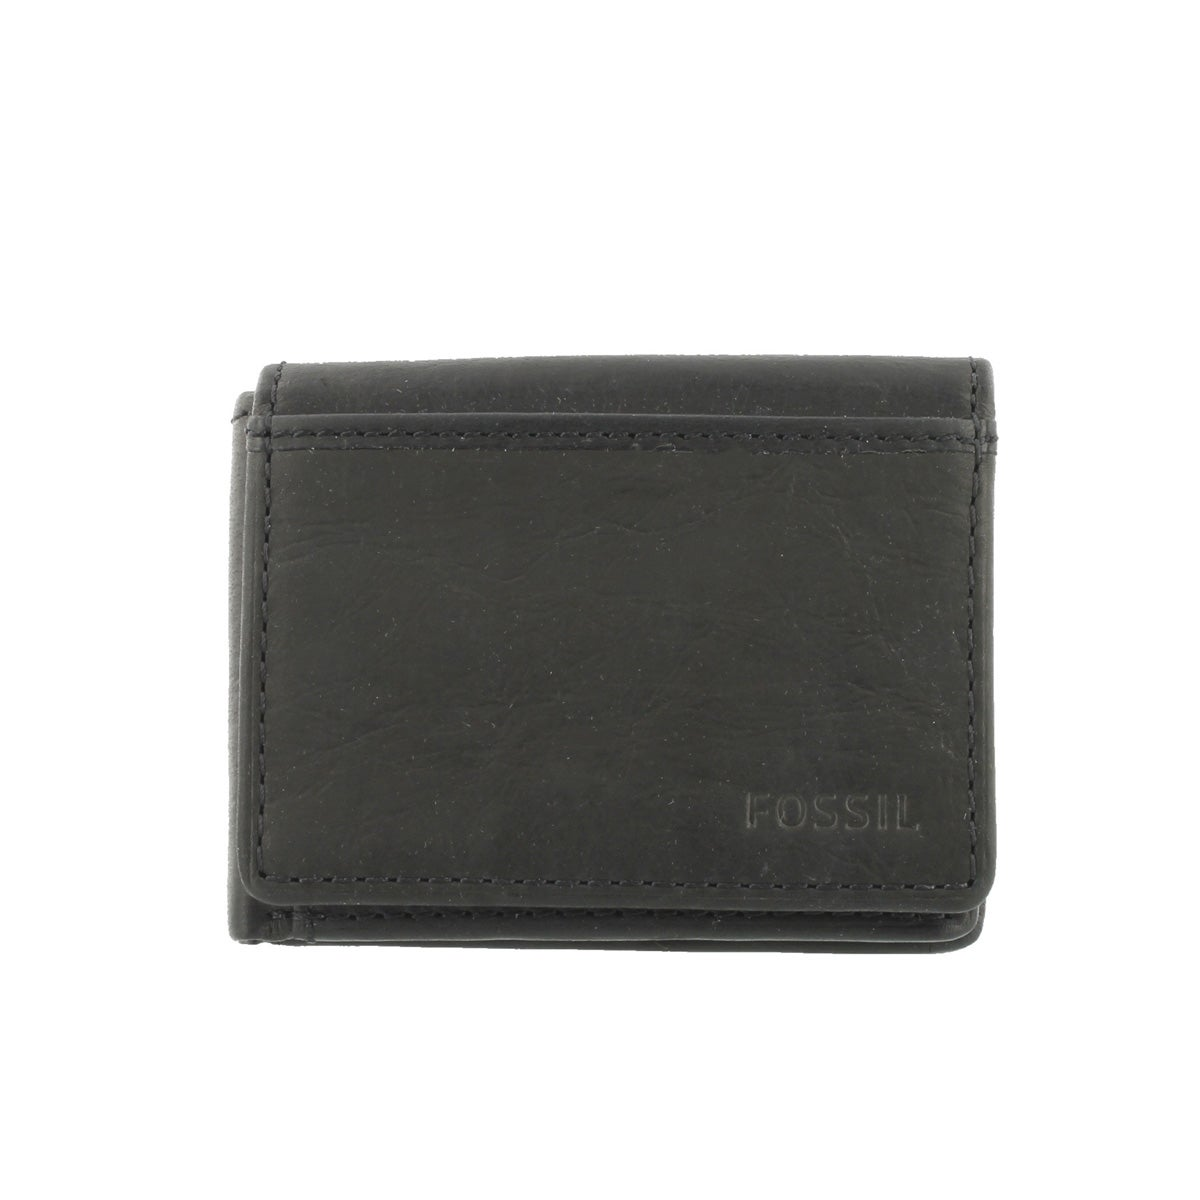 Mns Ingram Execufold blk leather wallet